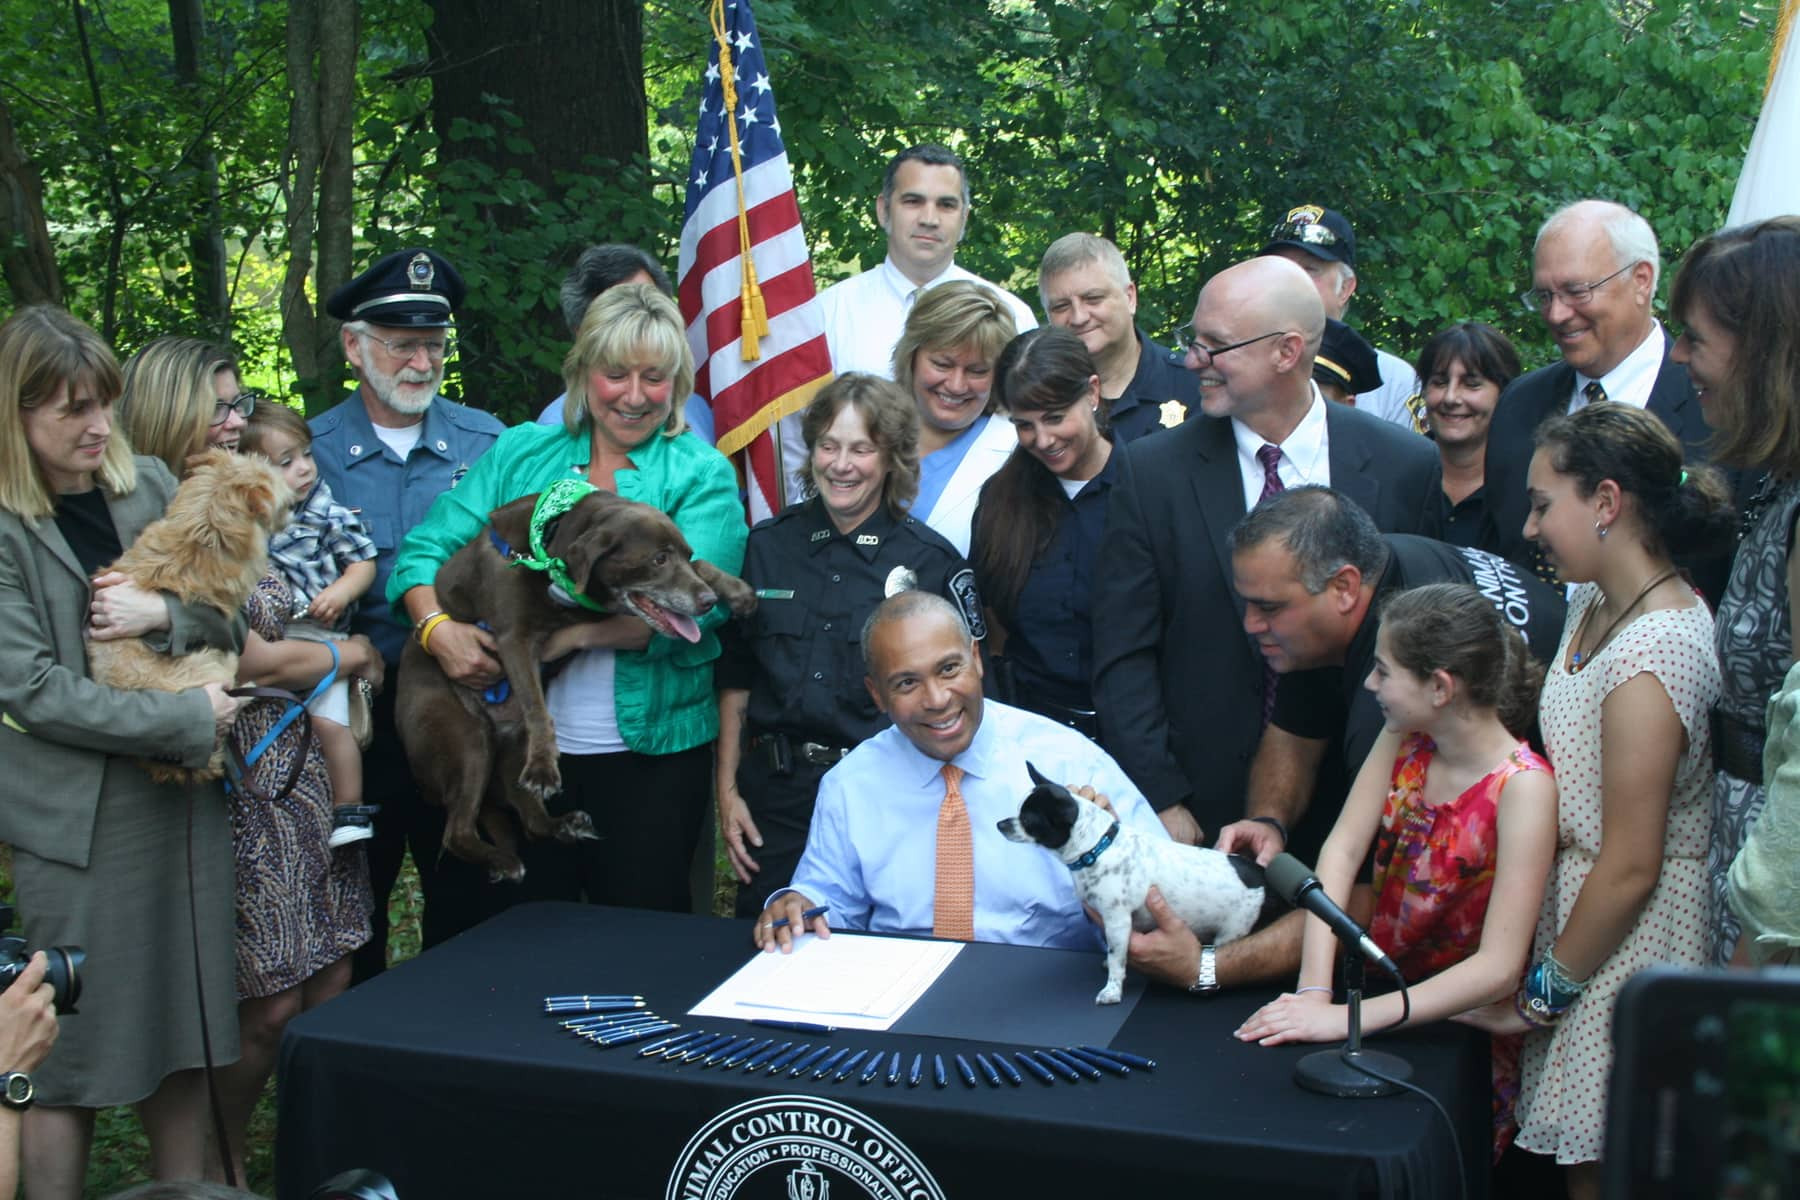 MSPCA-Angell Joins Governor Deval Patrick for Signing of Landmark Animal Welfare Legislation